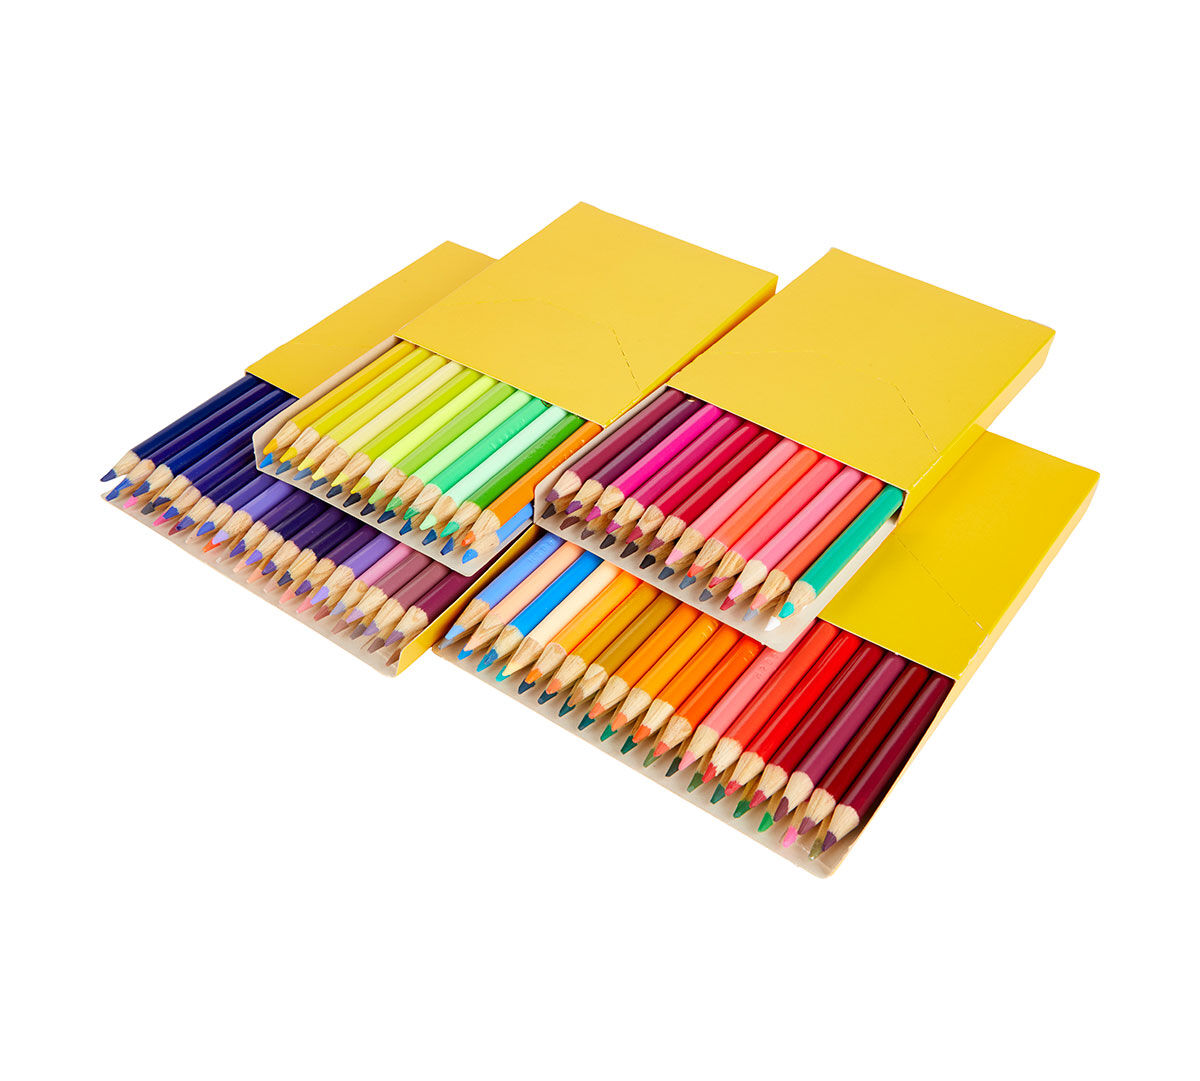 120 ct. Colored Pencils, 120 different colors | Crayola